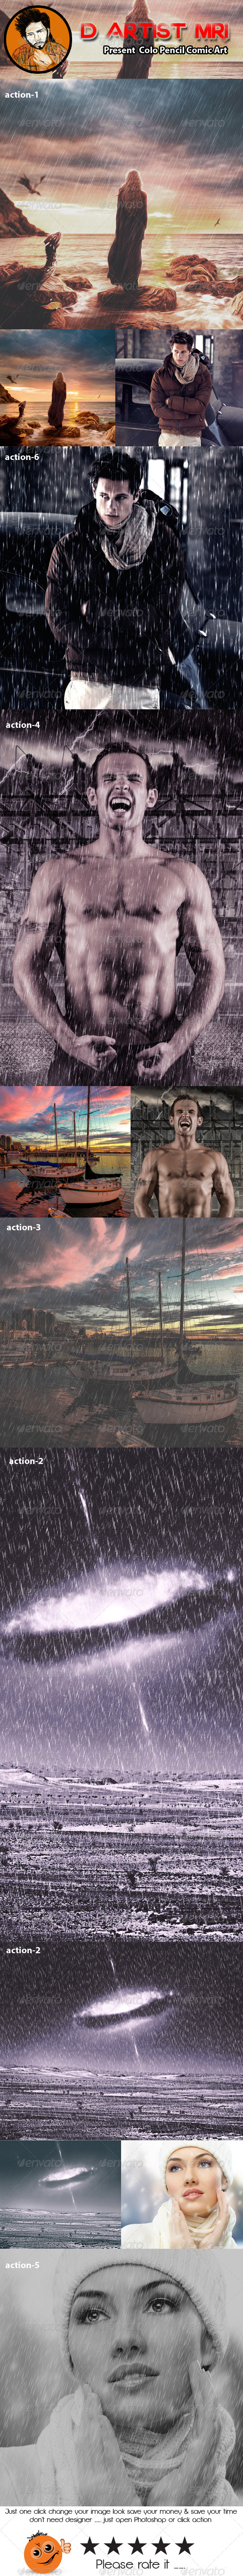 GraphicRiver Rain Photoshop Action 8531619